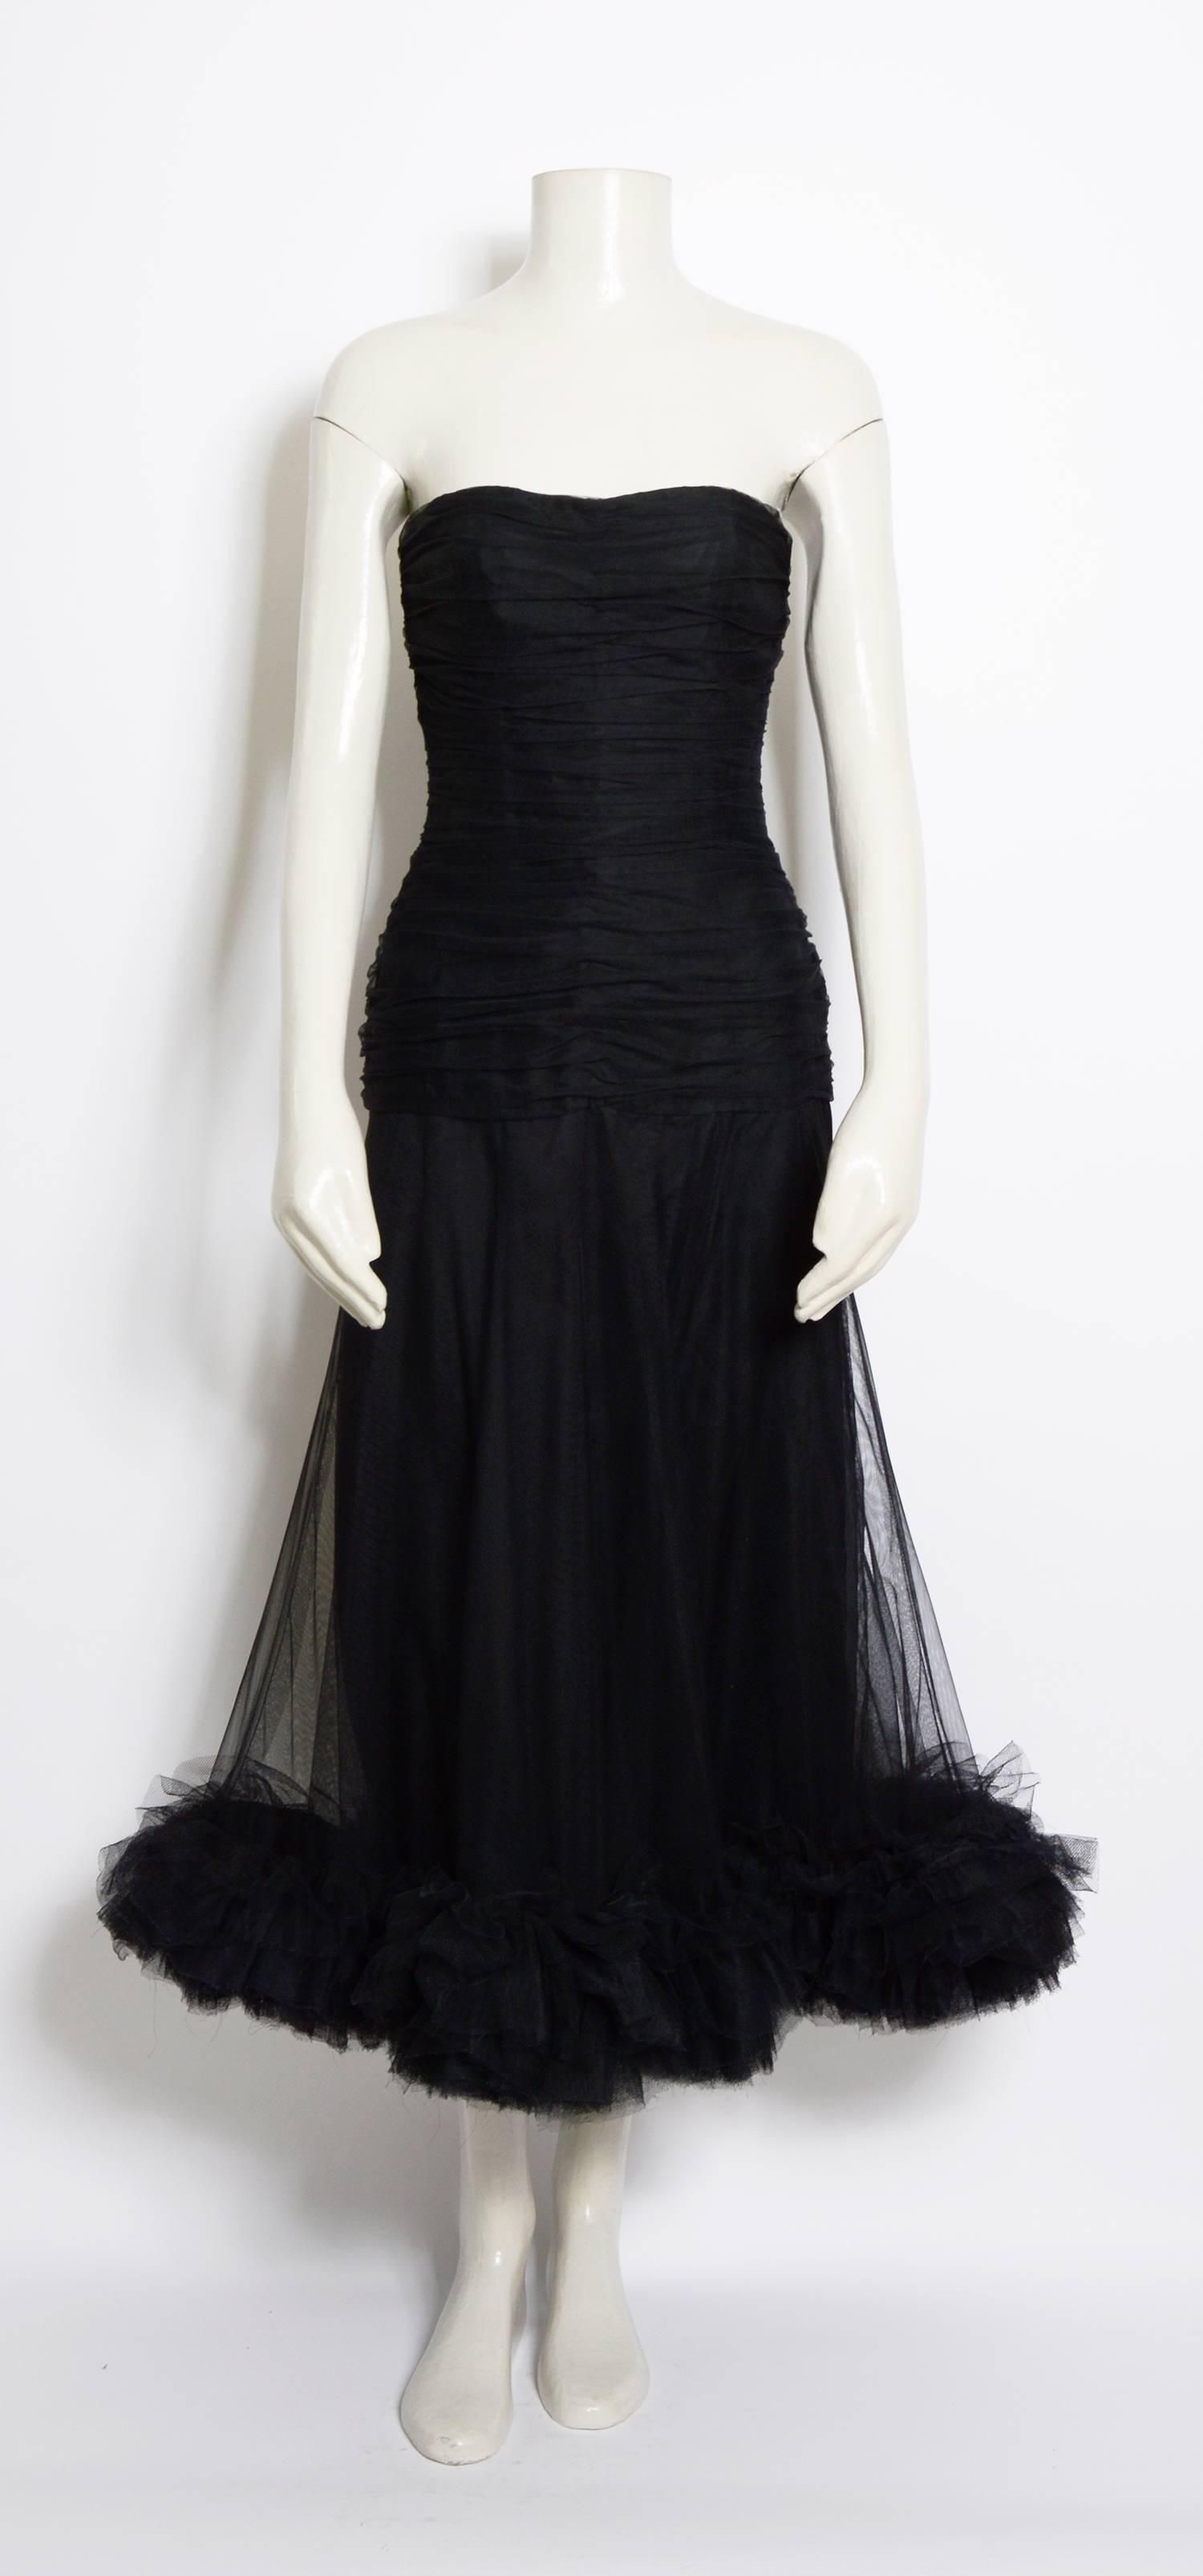 a5288456a0d Christian Dior vintage black tulle / silk ruched bustier dress, 1950s For  Sale at 1stdibs